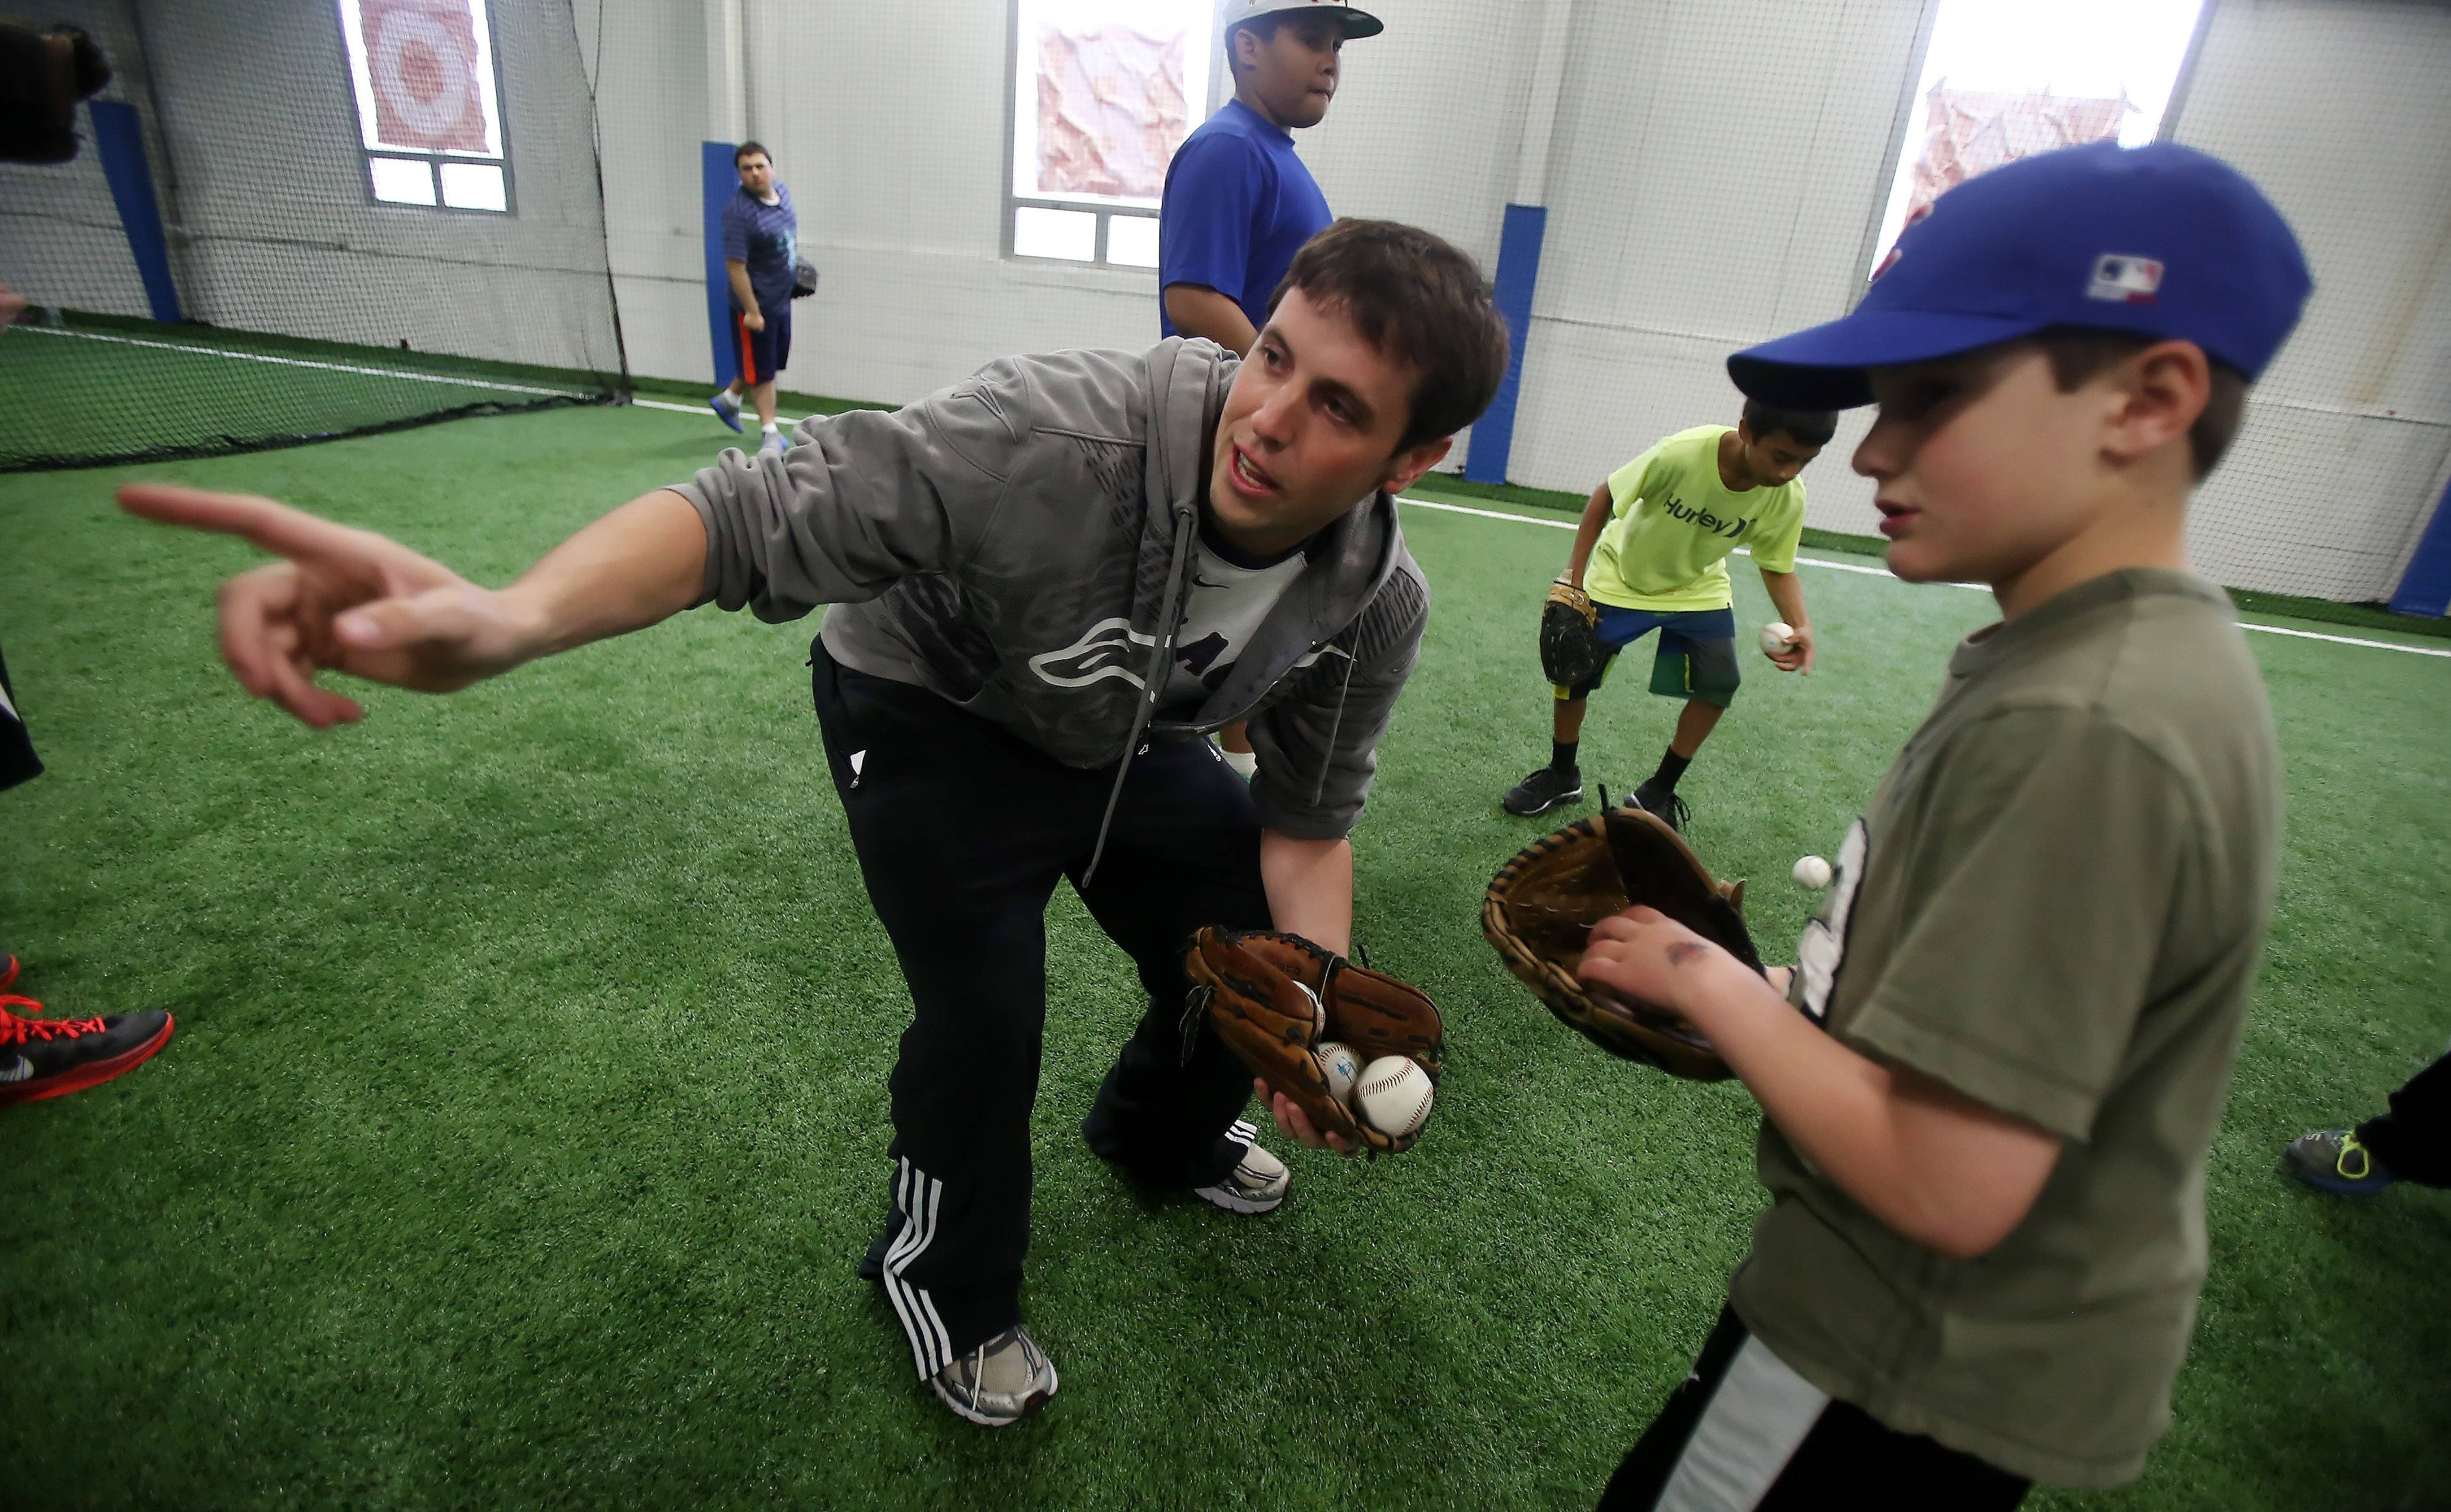 Cubs manager Justin Gebhardt directs Nicky Gebhardt, 8, during practice with the Lake Zurich Baseball and Softball Association Wednesday at the Main Street Sports Center in Lake Zurich.